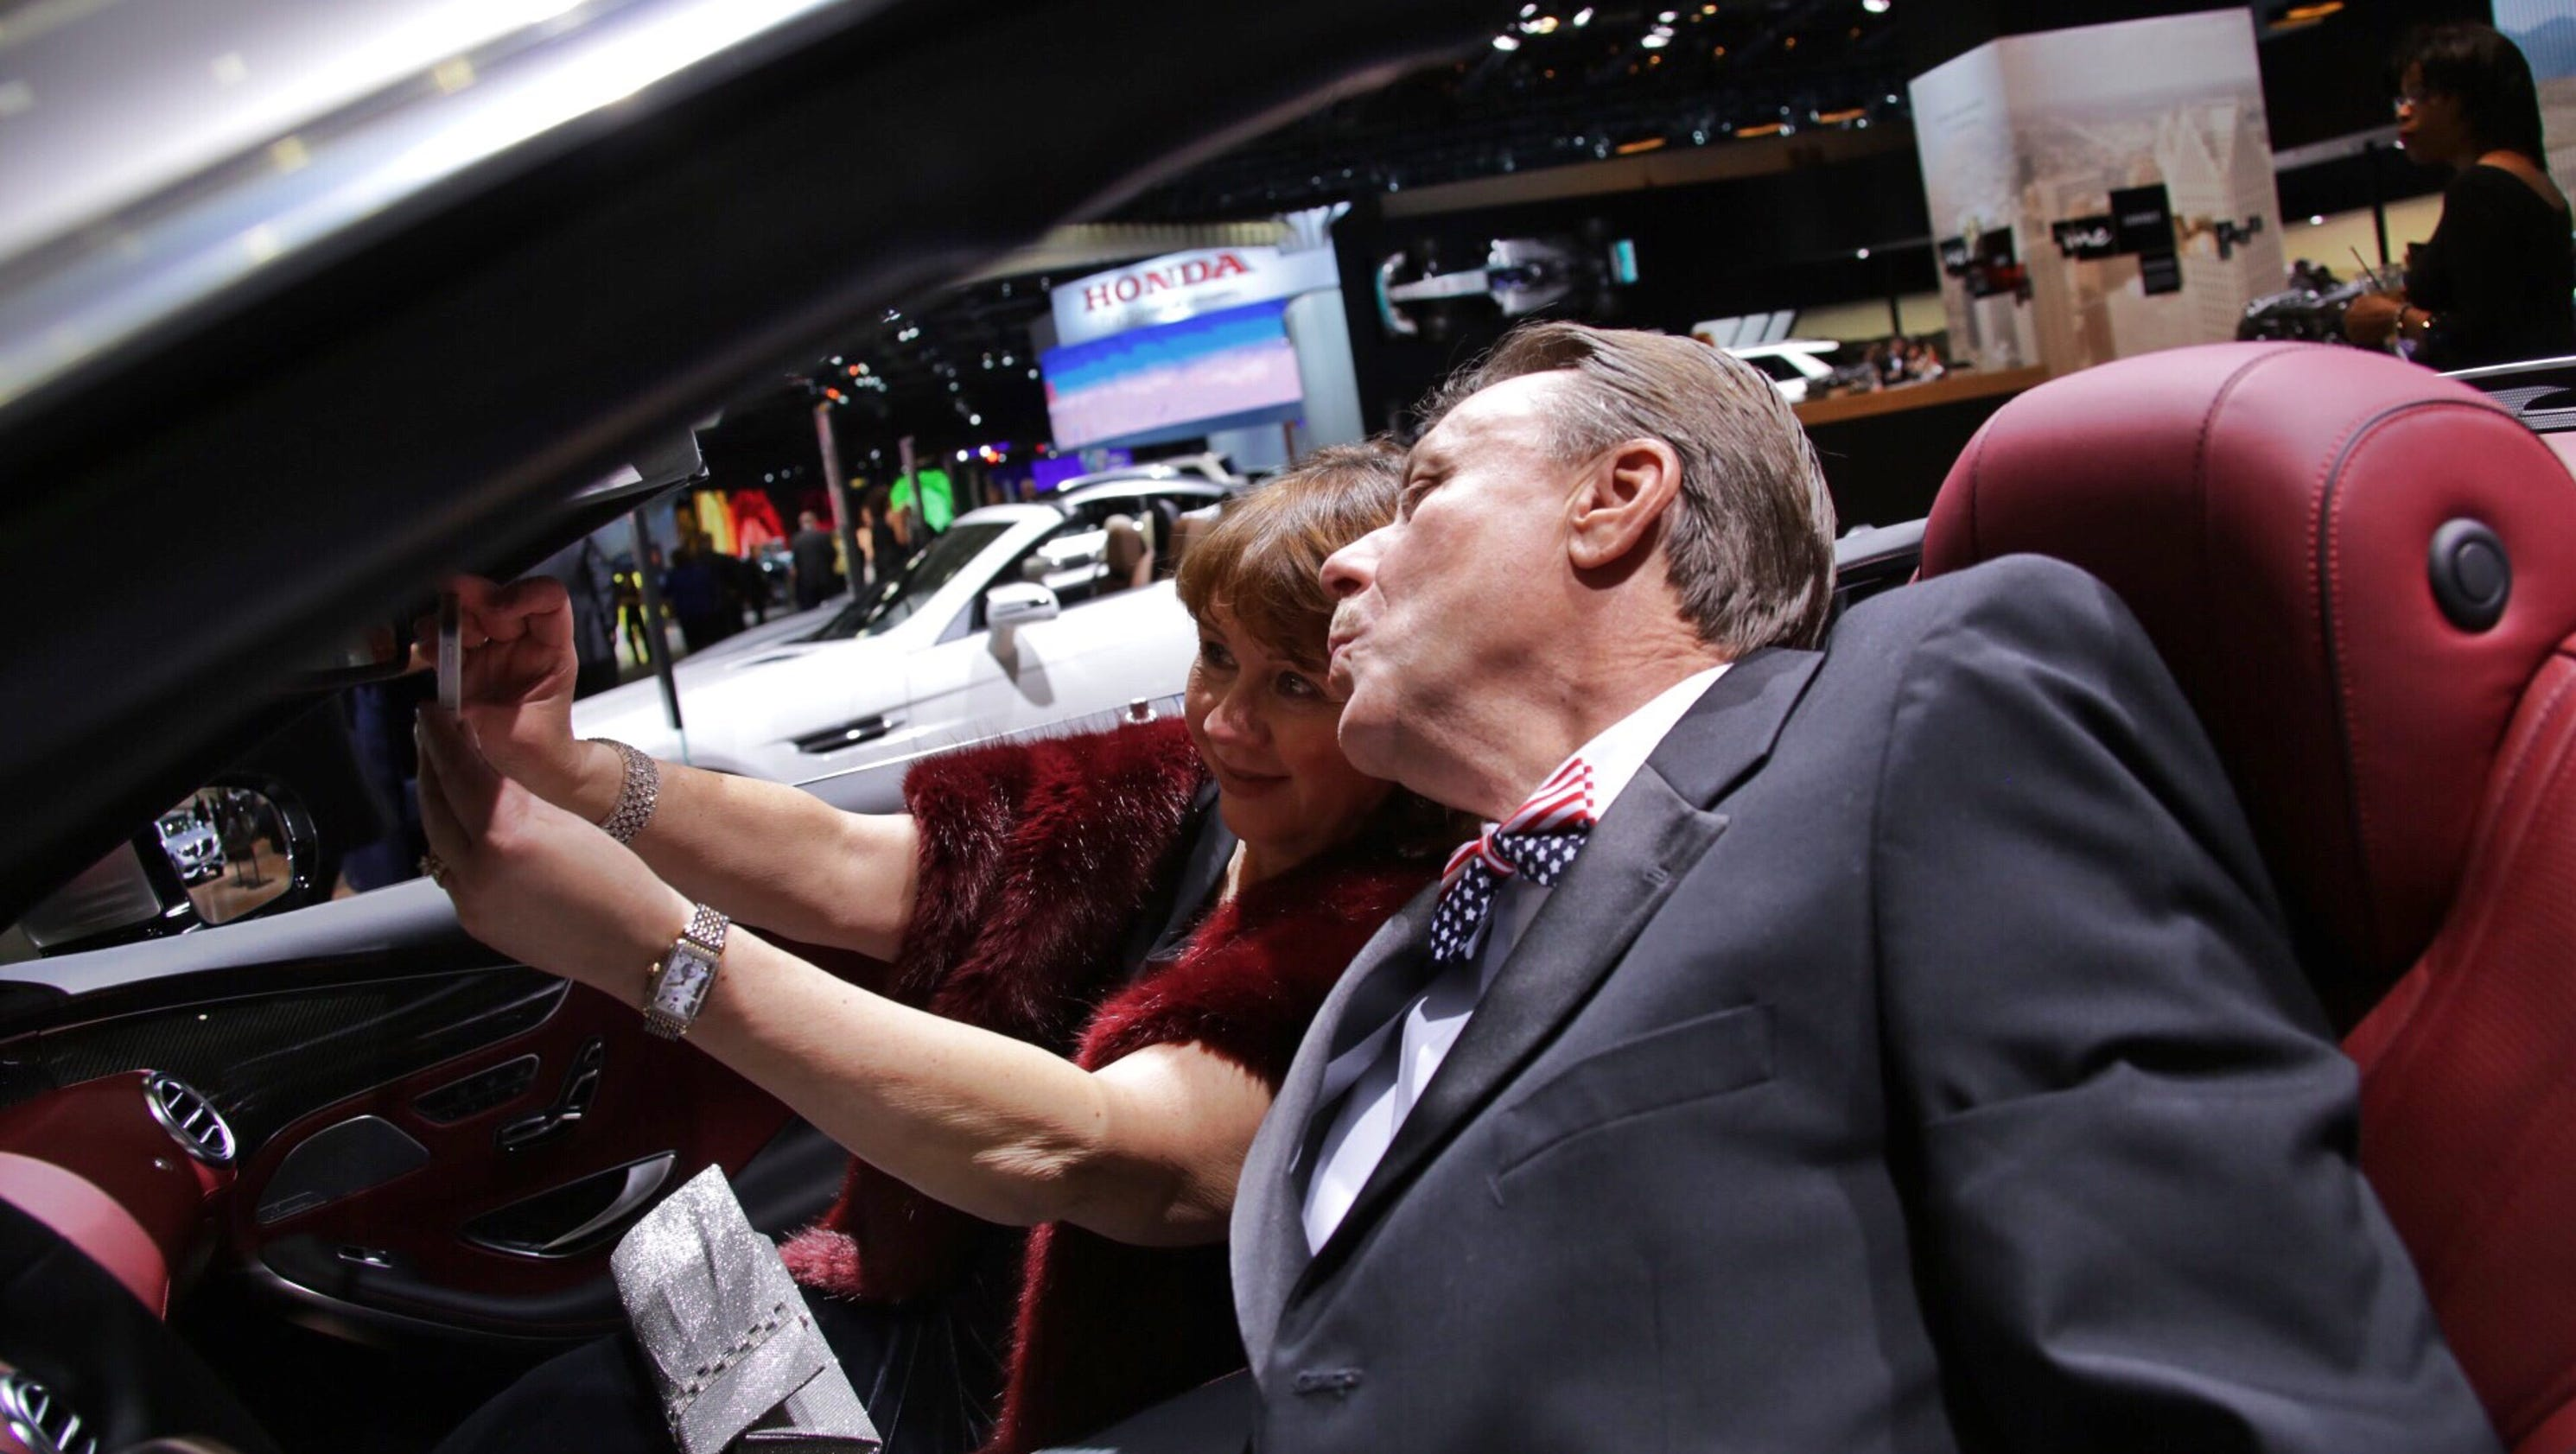 2016 detroit auto show charity preview gallery 1 for Charity motors auction in detroit mi